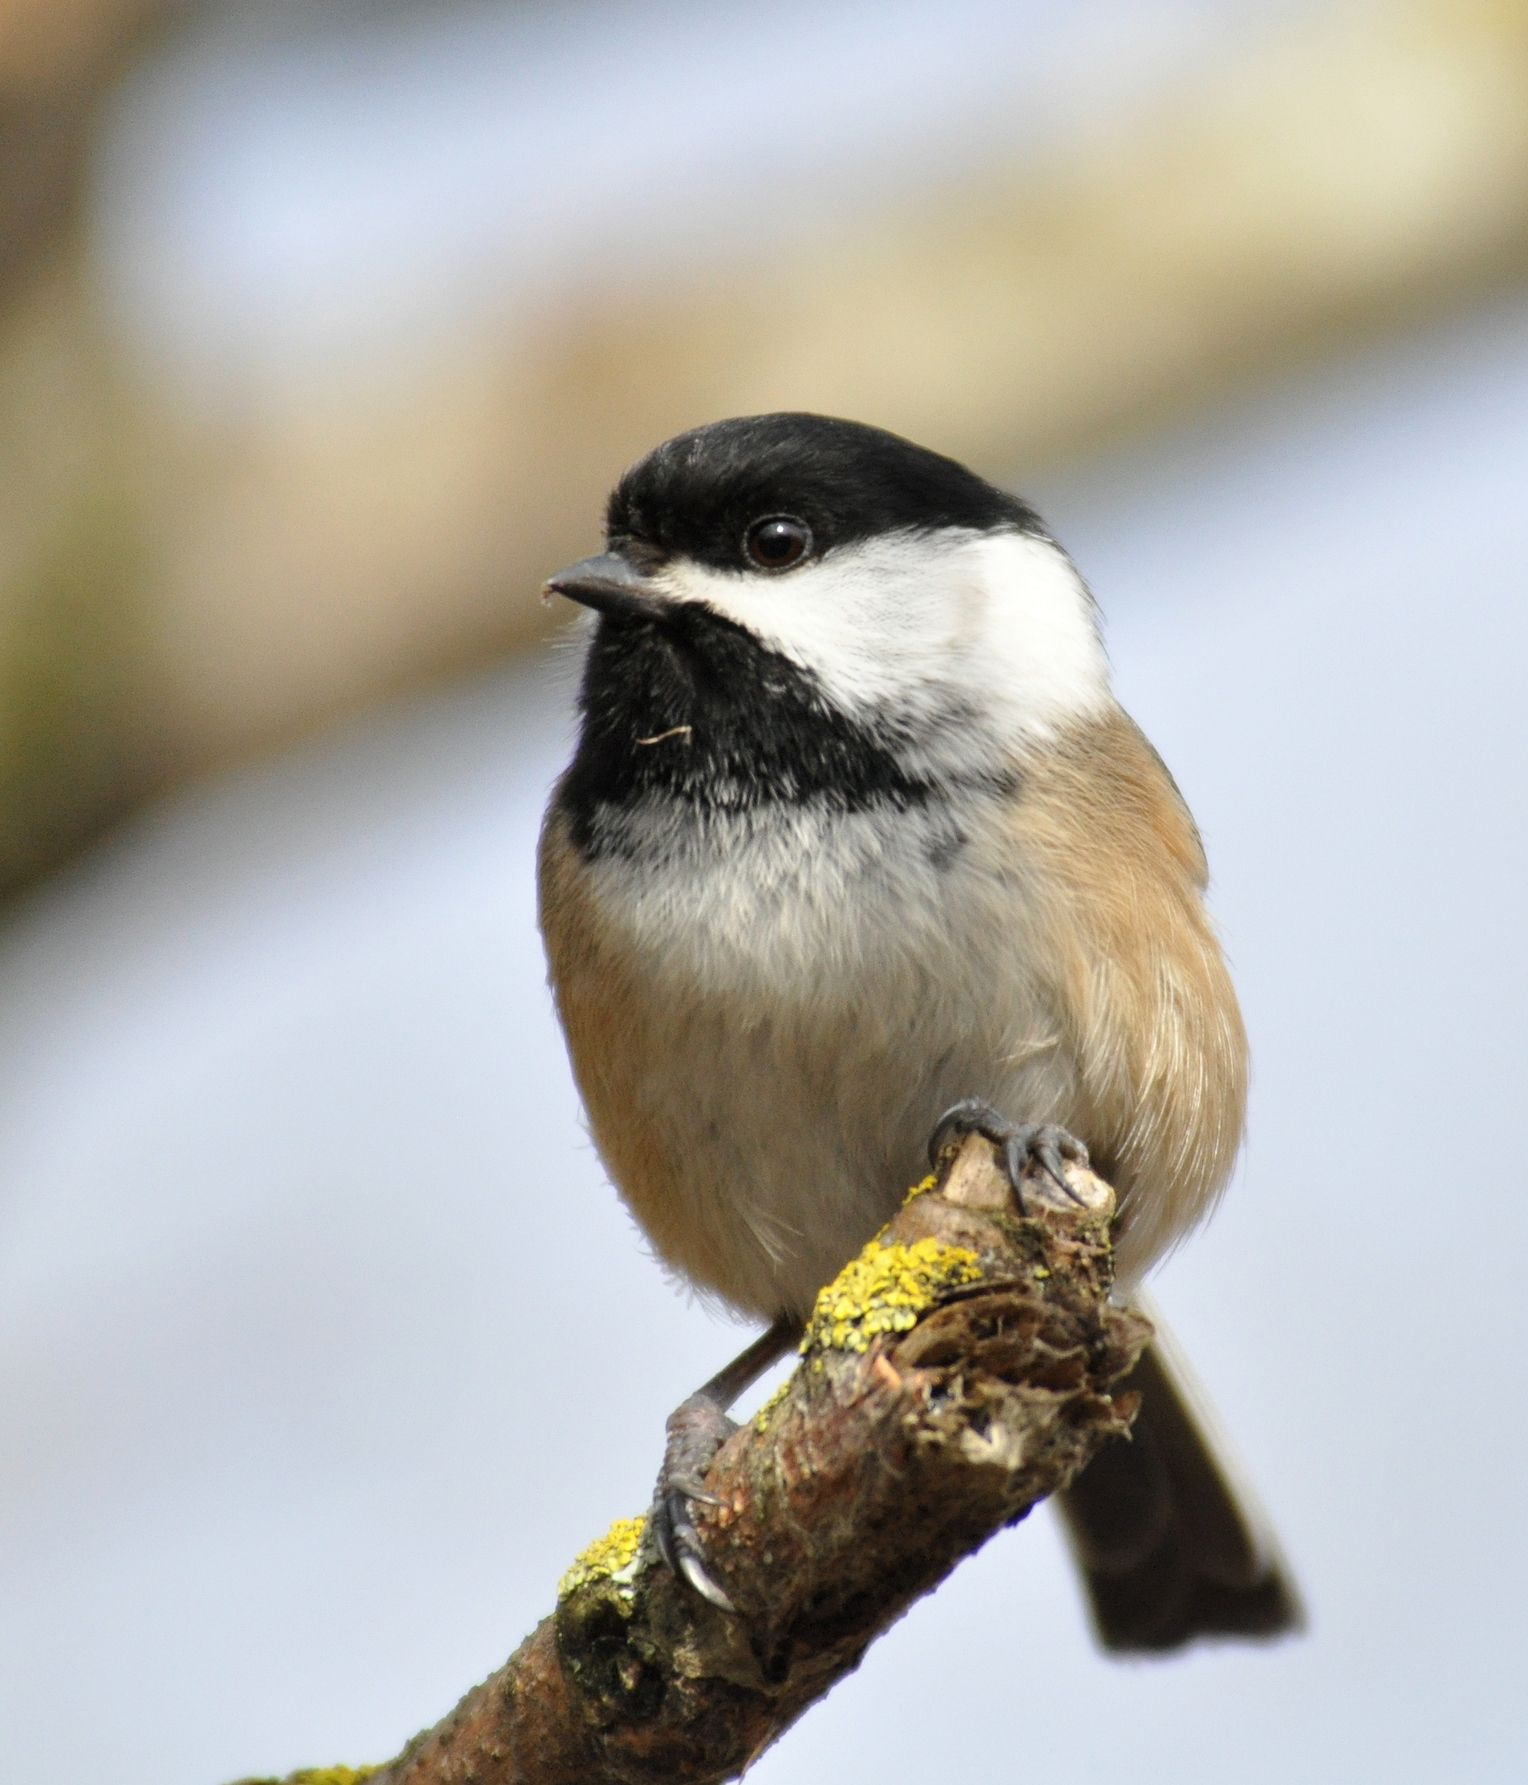 The Black-capped Chickadee was the 9th most spotted bird ...